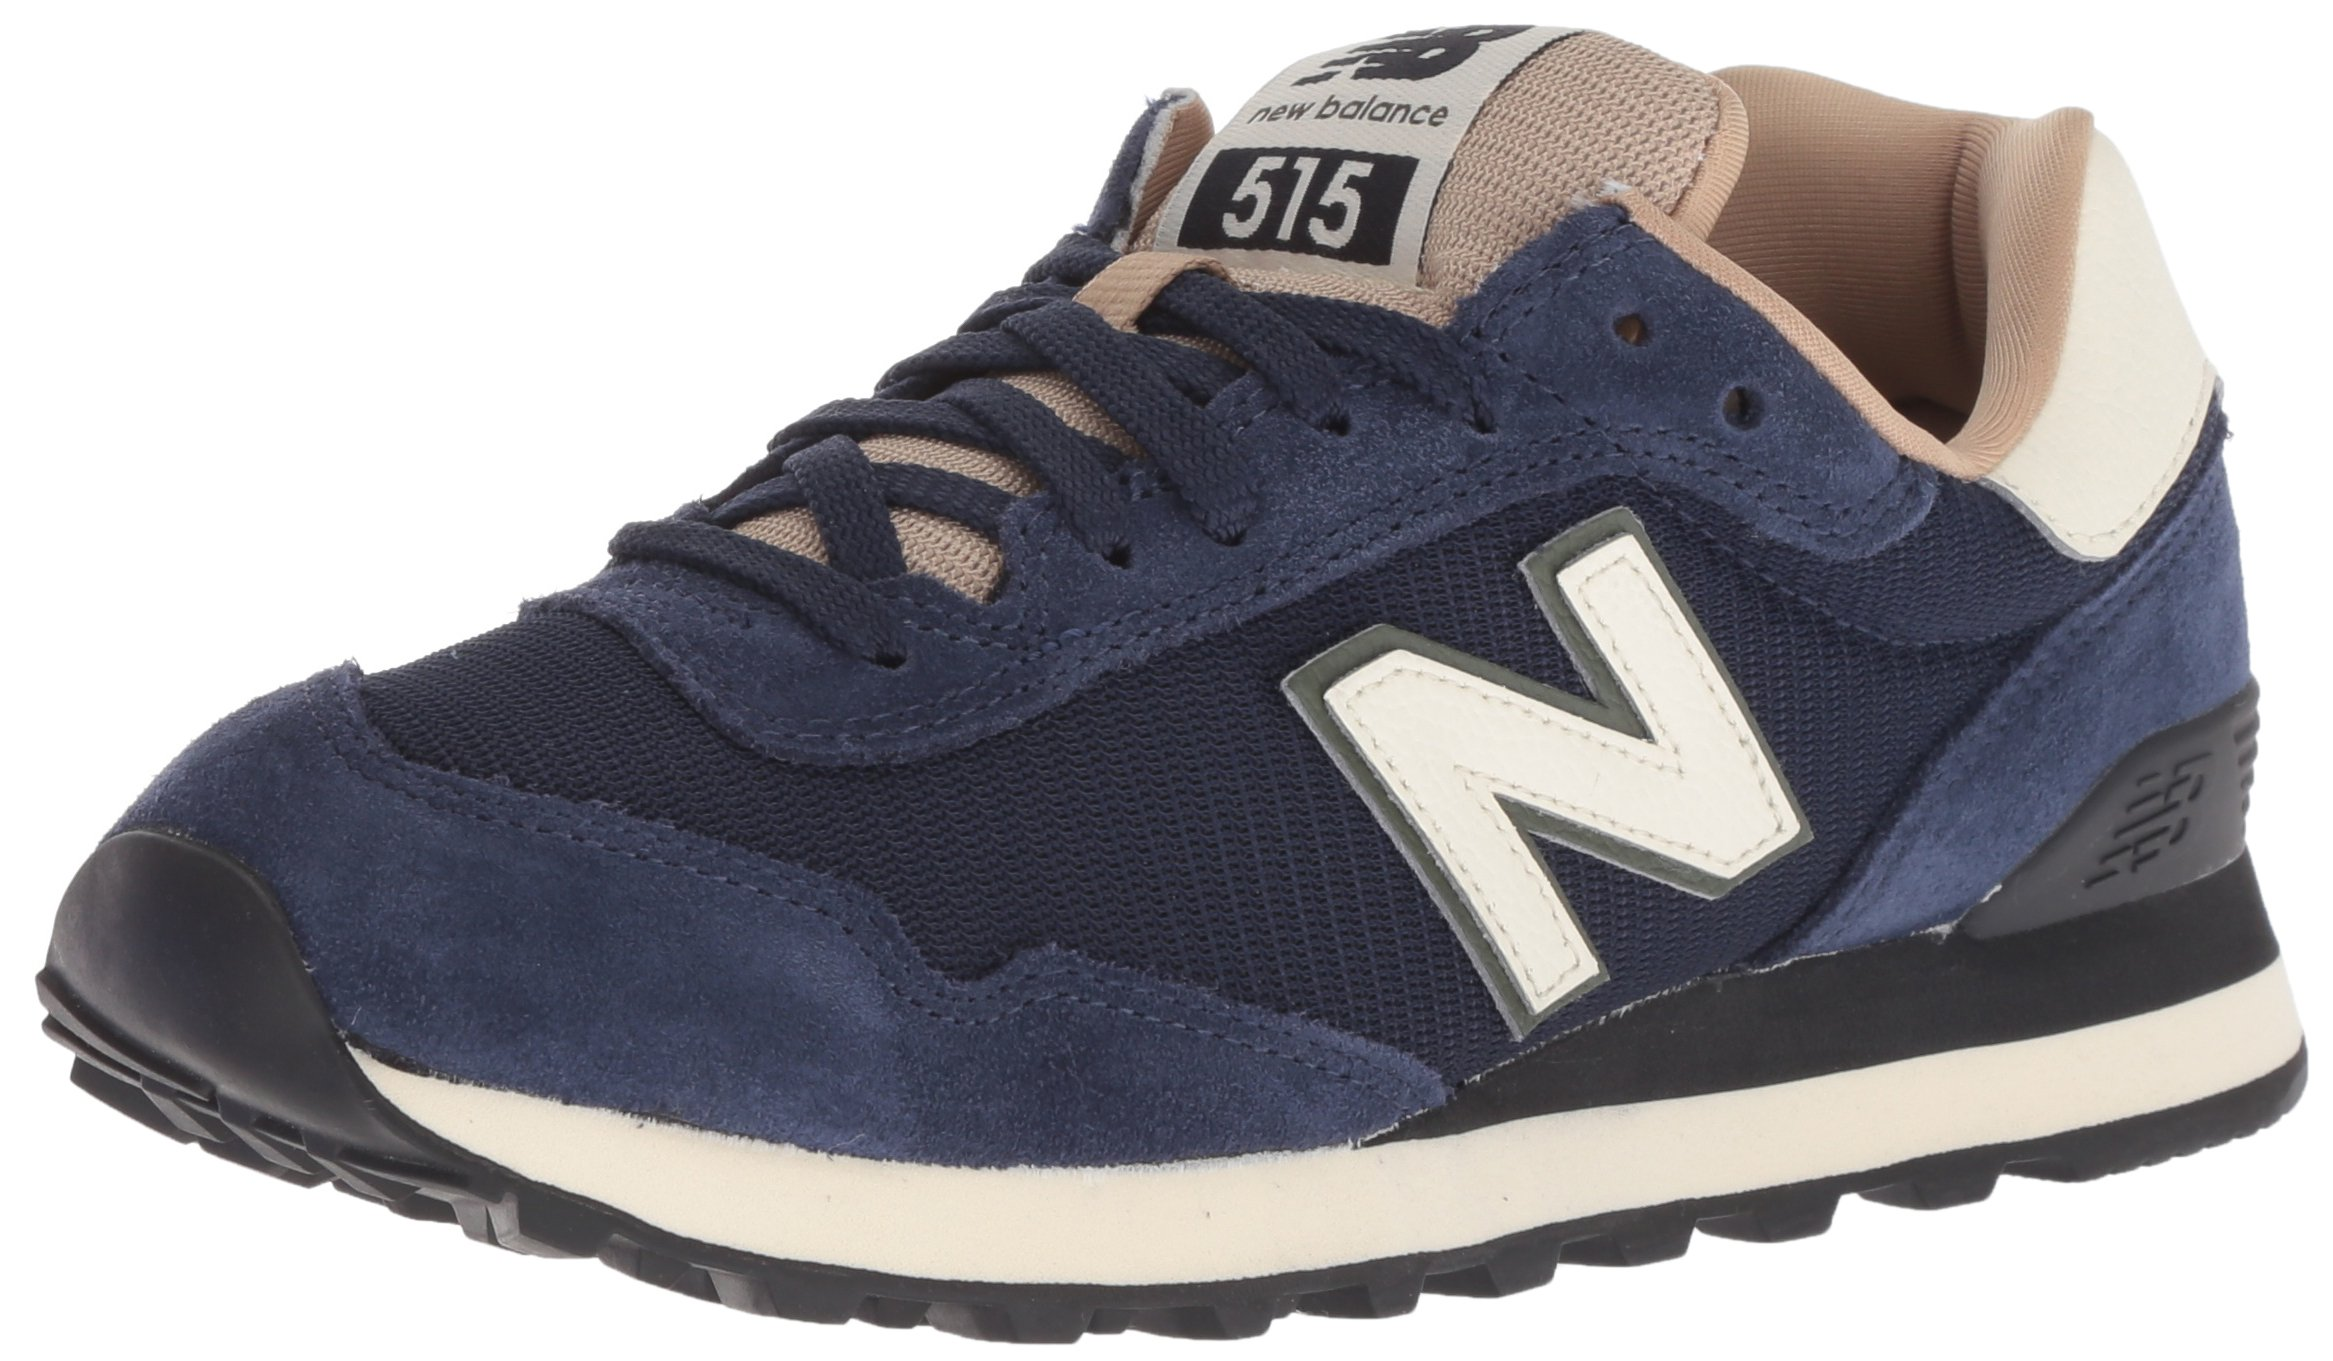 New Balance Men's 515v1 Sneaker, Pigment, 17 4E US